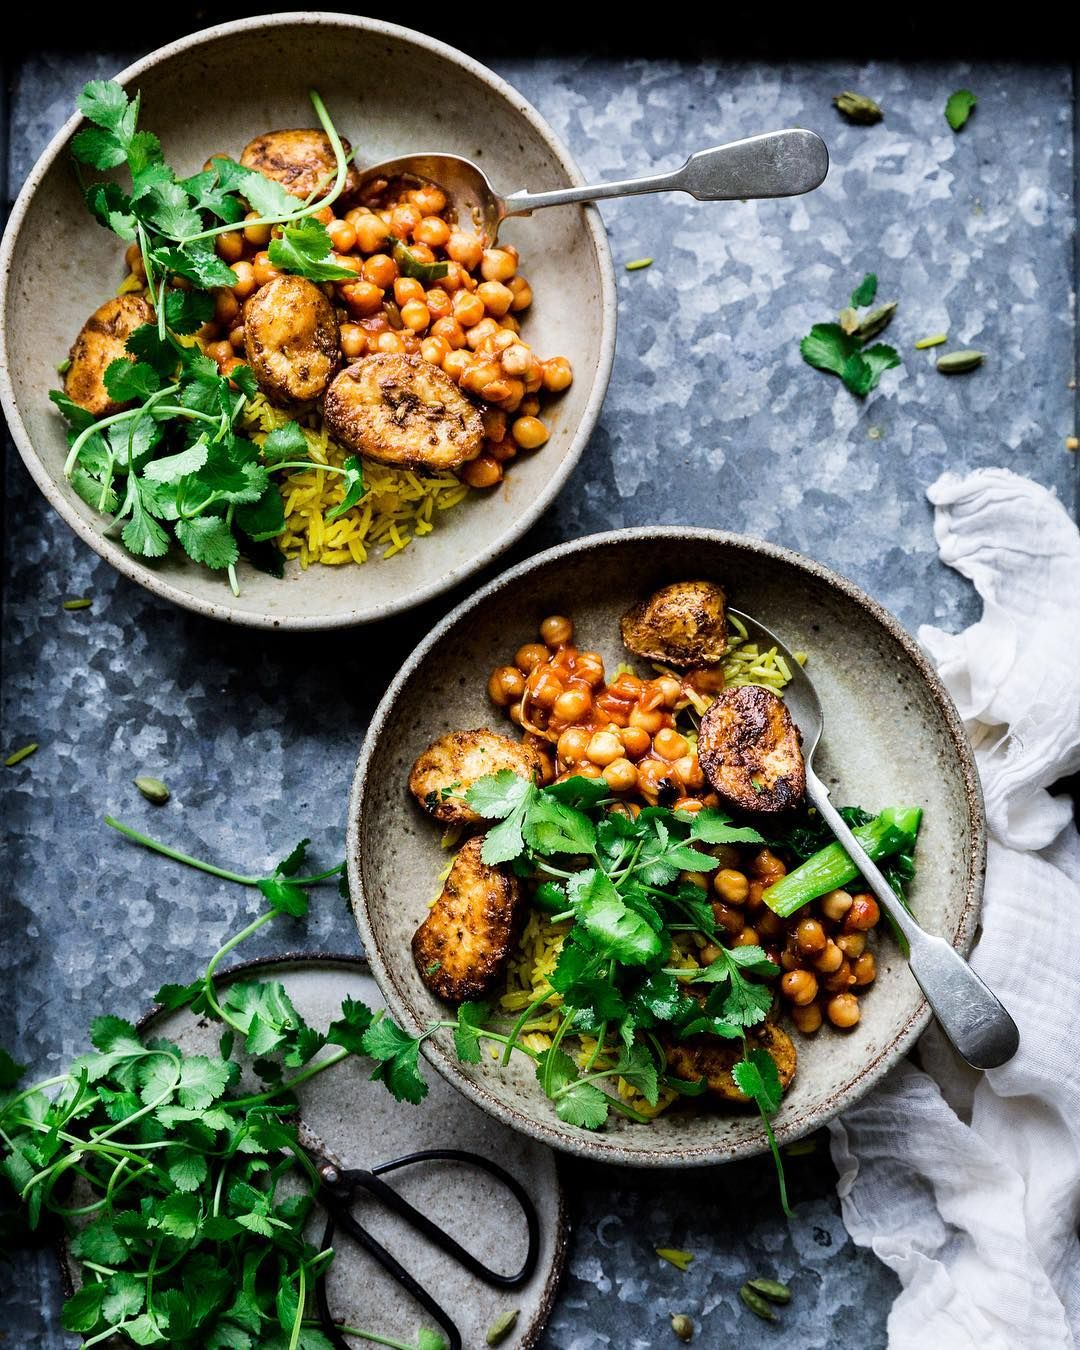 Vegan Bbq Shreds And Greens Click To See How I Style My Vegan Recipes A Foo Styling Instagram Accou With Images Healthy Food Photography Wholesome Food Quick Vegan Meals